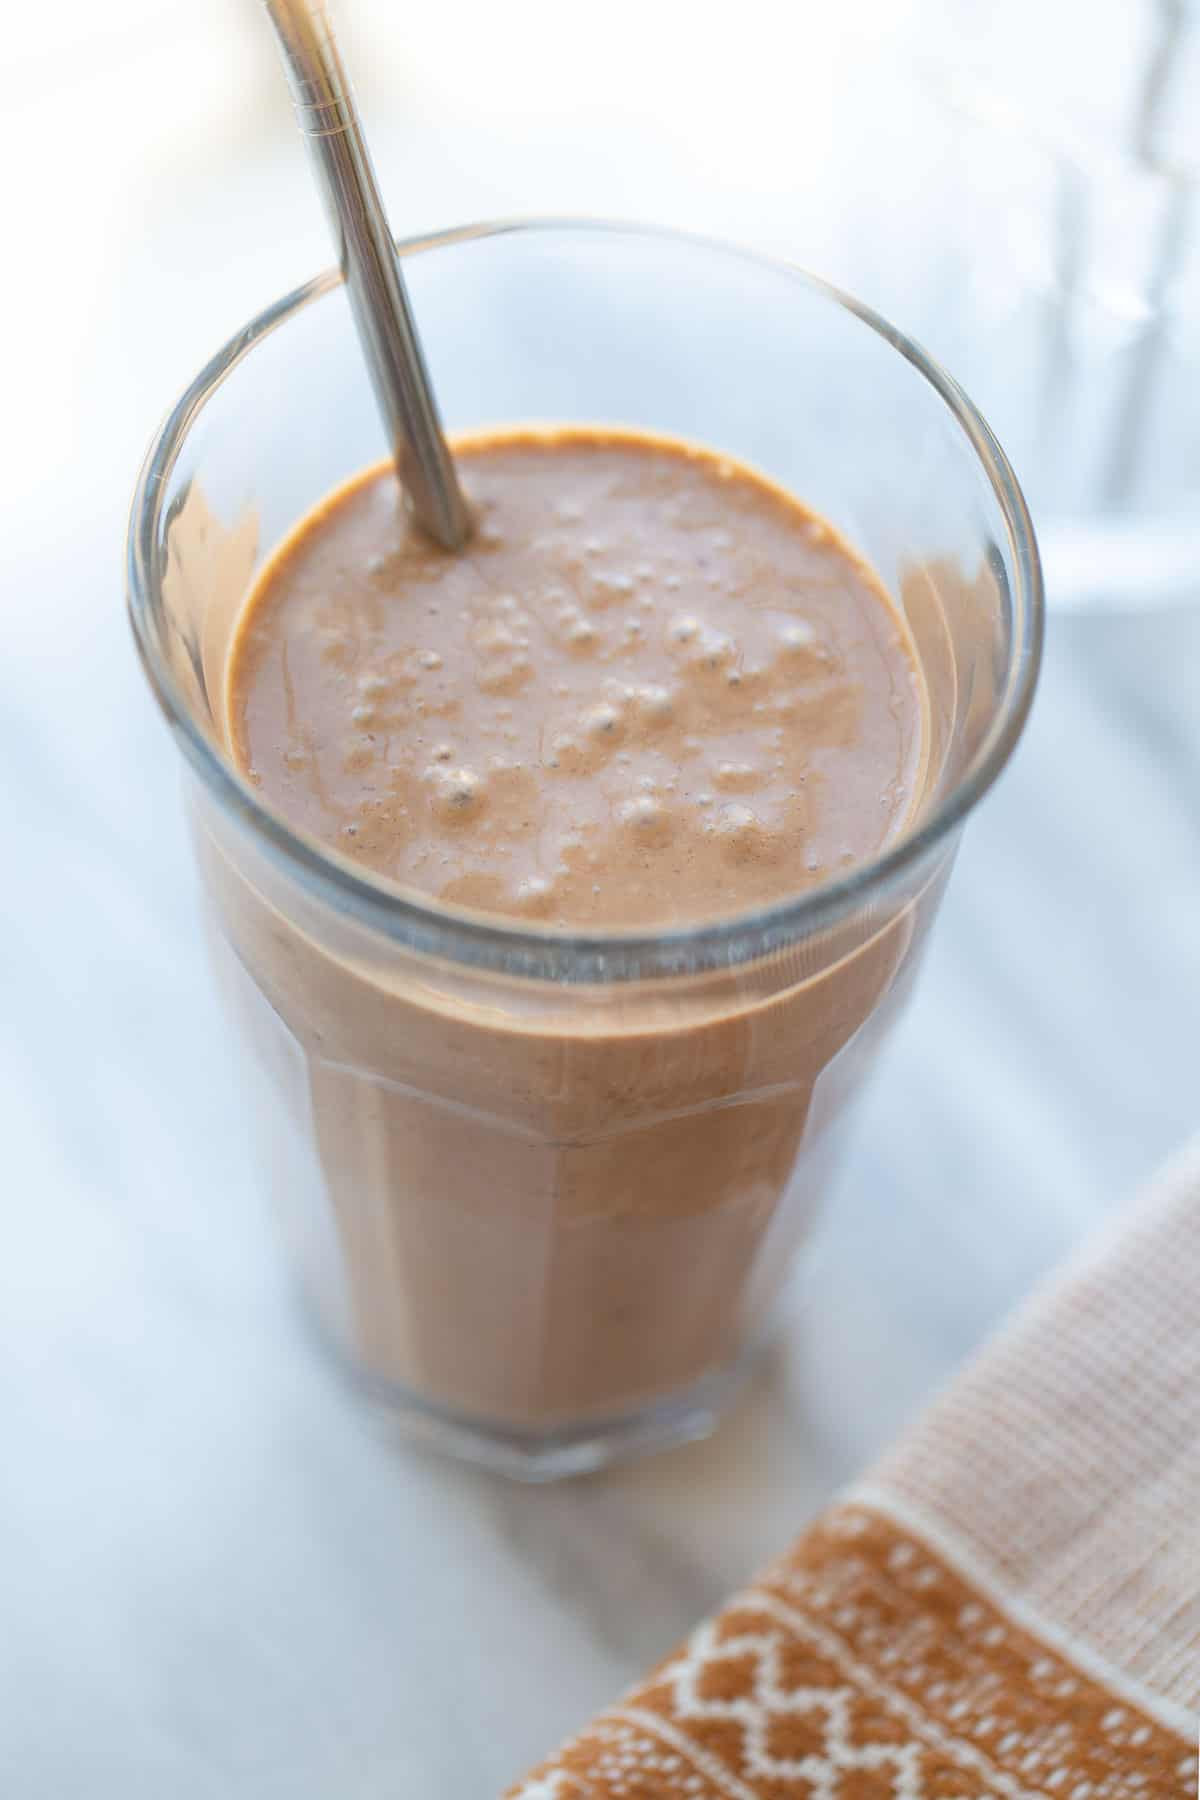 healthy chocolate smoothie with peanut butter and banana in a glass with a straw